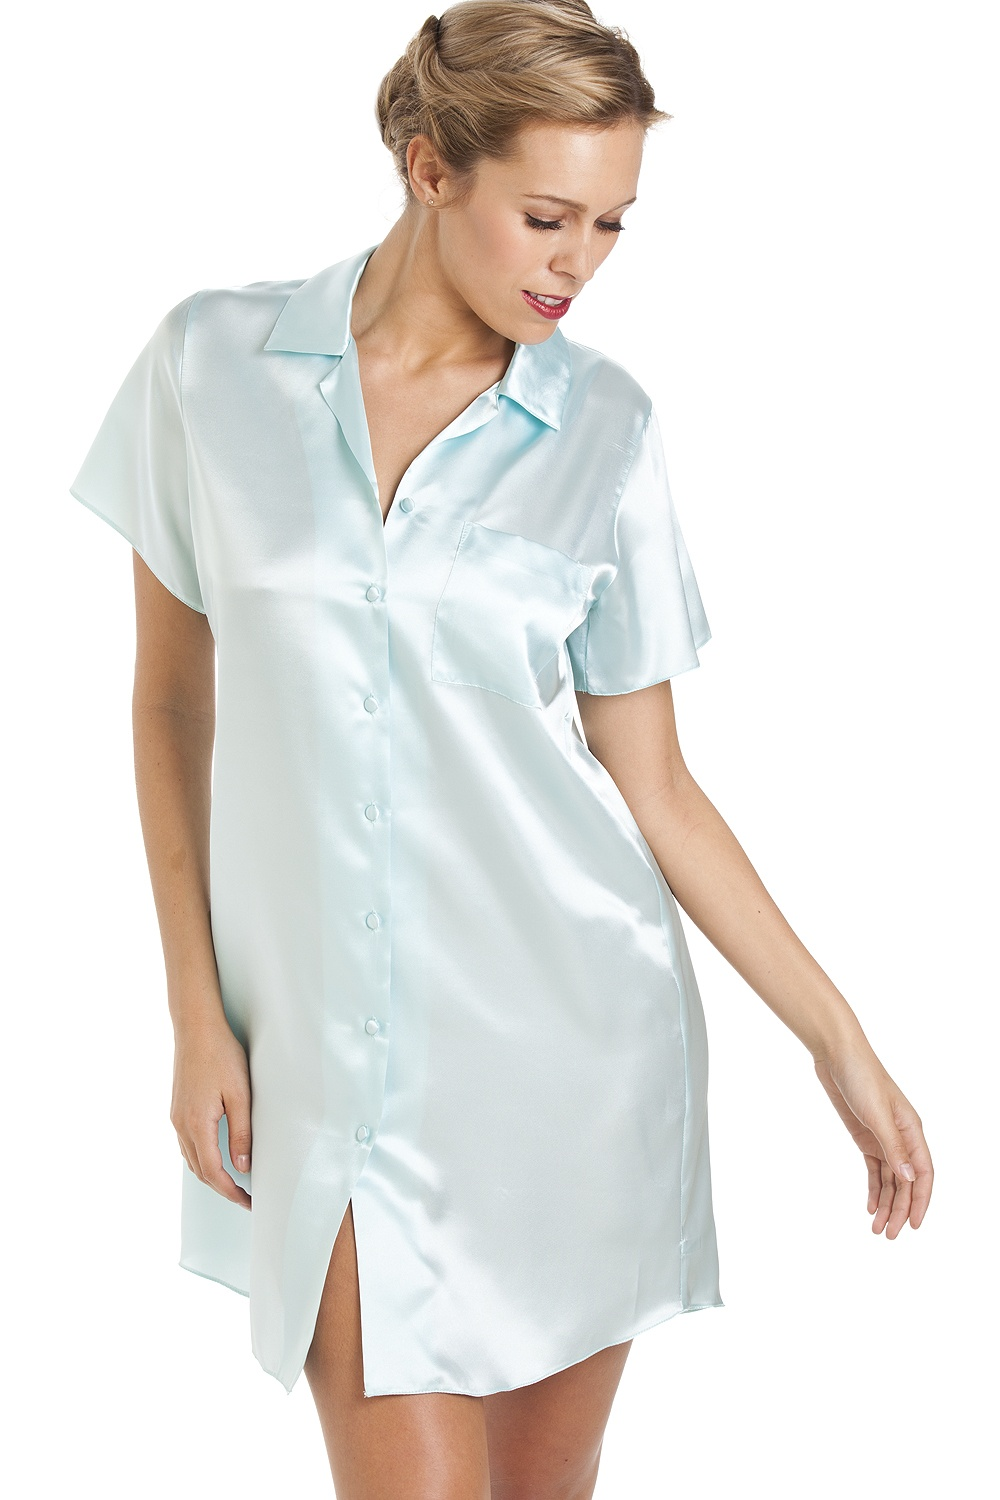 Shop for sleepwear nightshirts online at Target. Free shipping on purchases over $35 and save 5% every day with your Target REDcard.